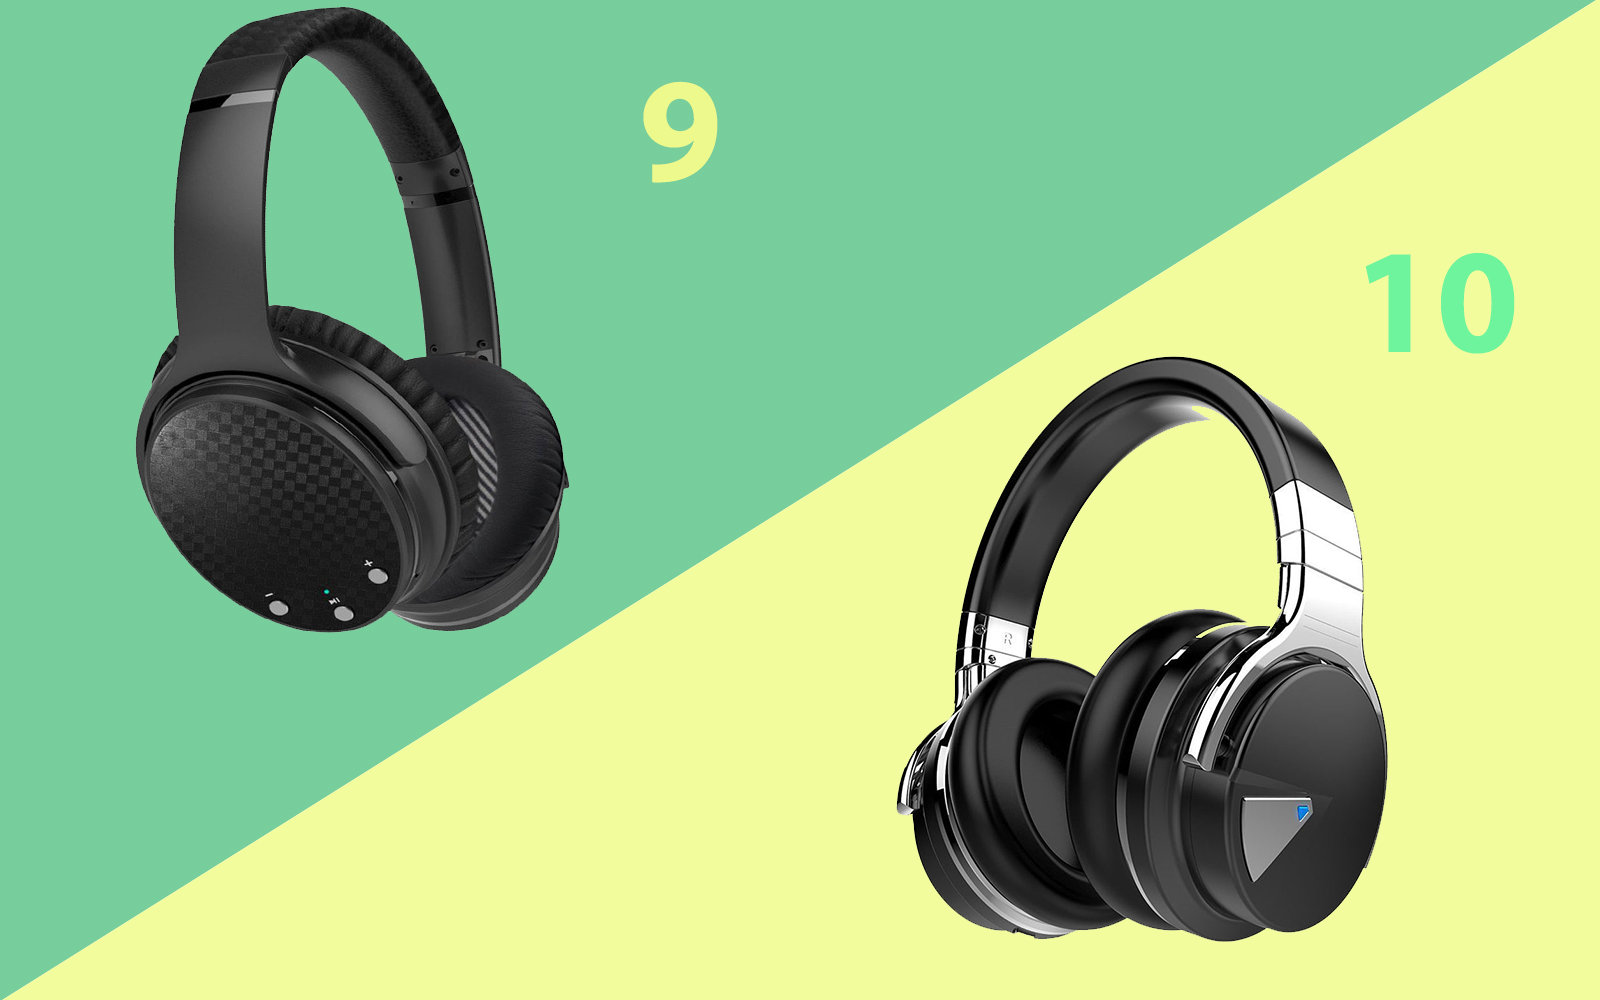 Noise canceling headphones from Hieracool and Linkwitz, under $100